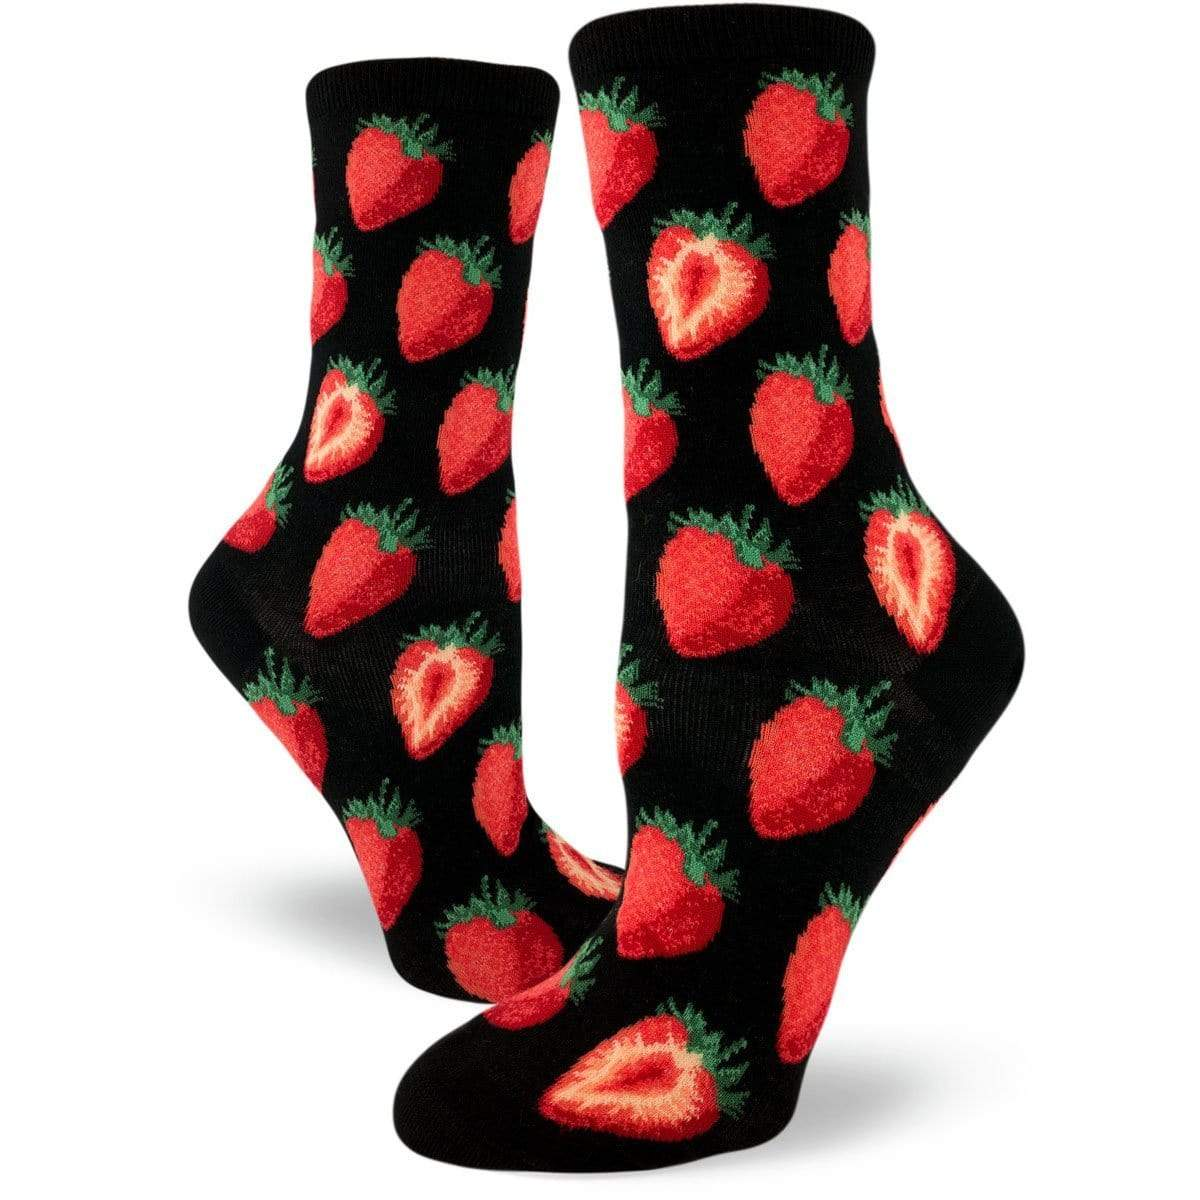 Strawberry Crew Socks for Women red